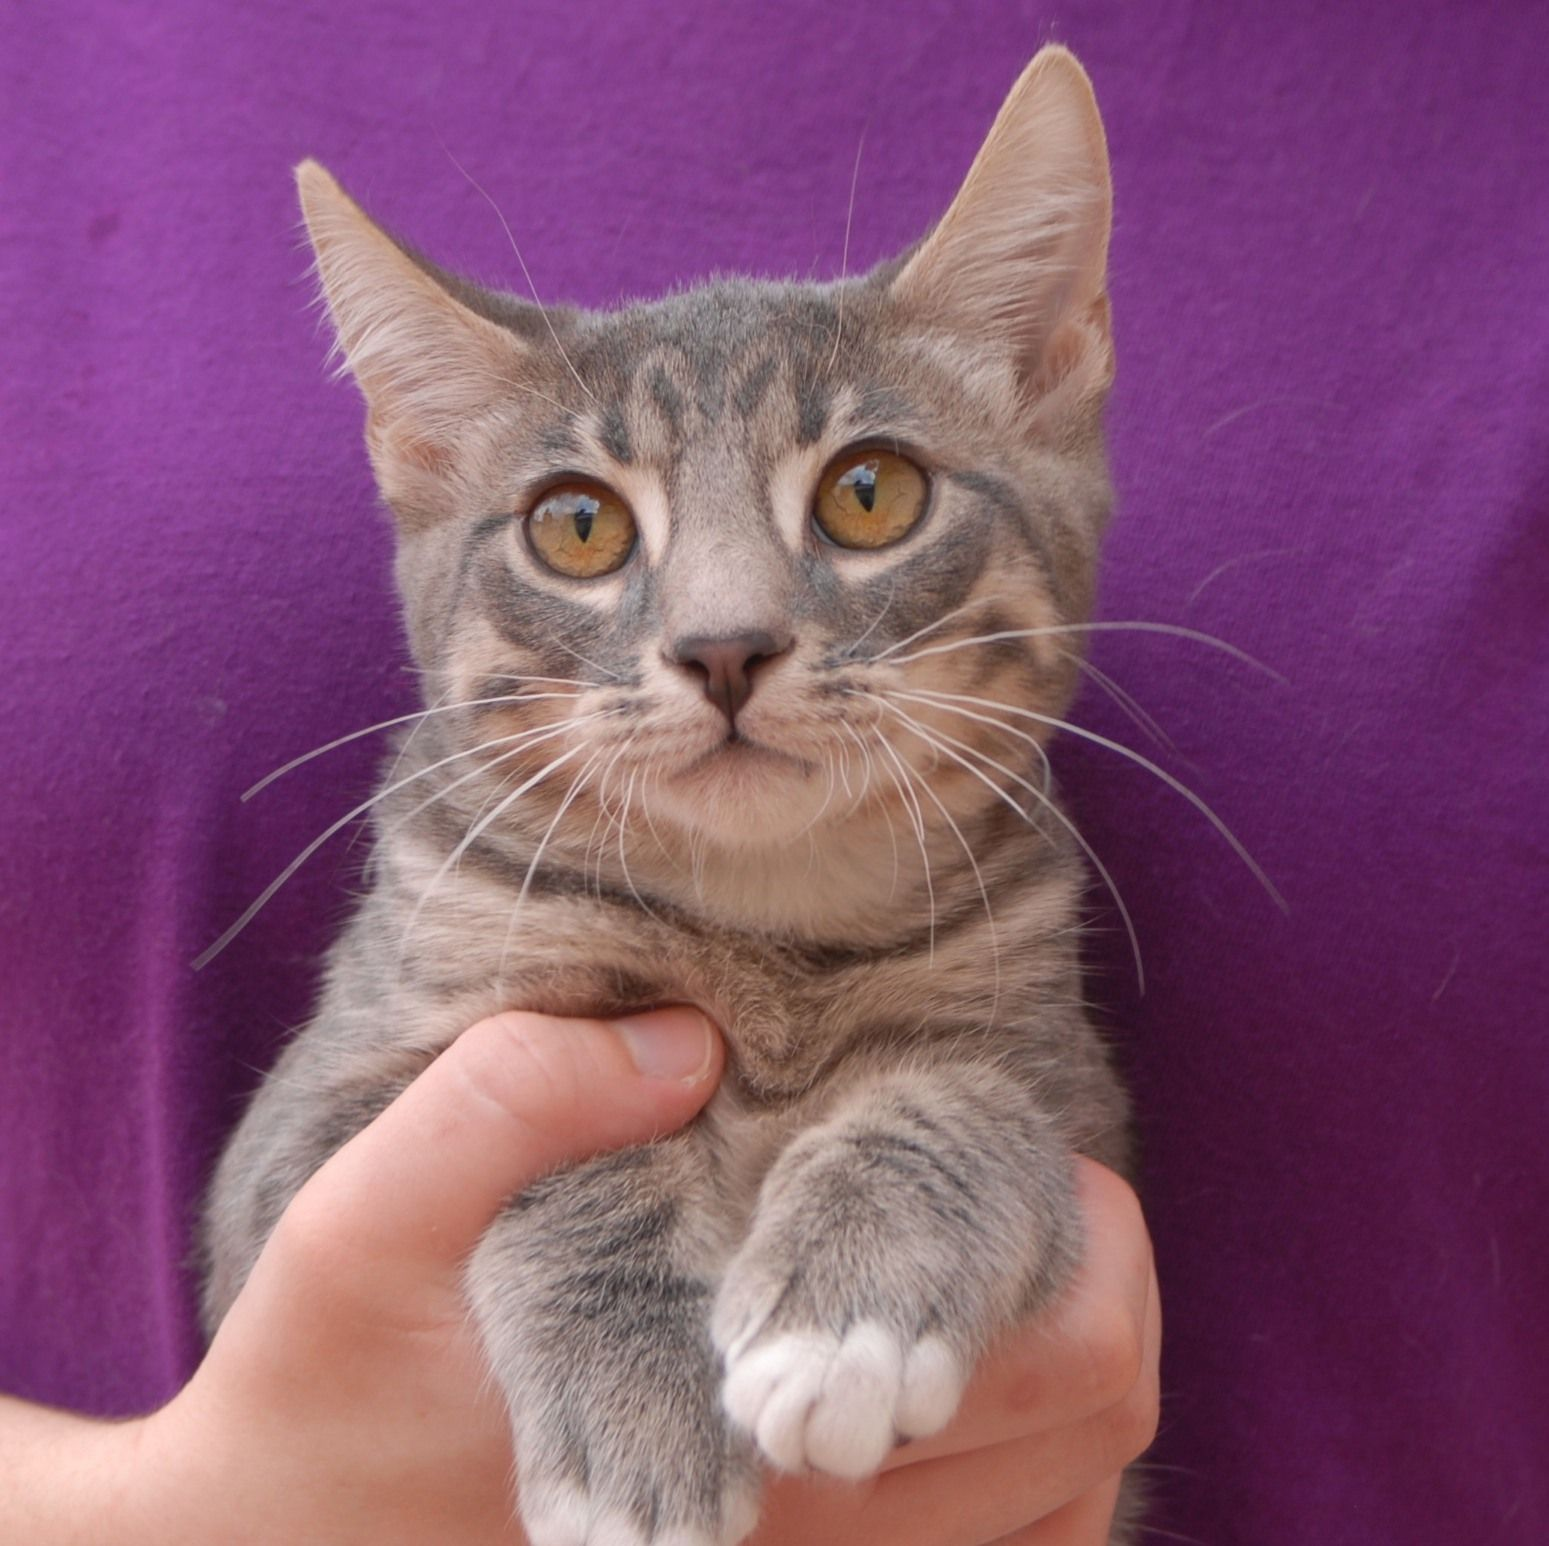 Jerry Amazed His Foster Parents By Playing Perfect Games Of Fetch Bringing The Mouse Toy Back To Them Each Time Silver Tabby Kitten Cat Adoption Tabby Kitten